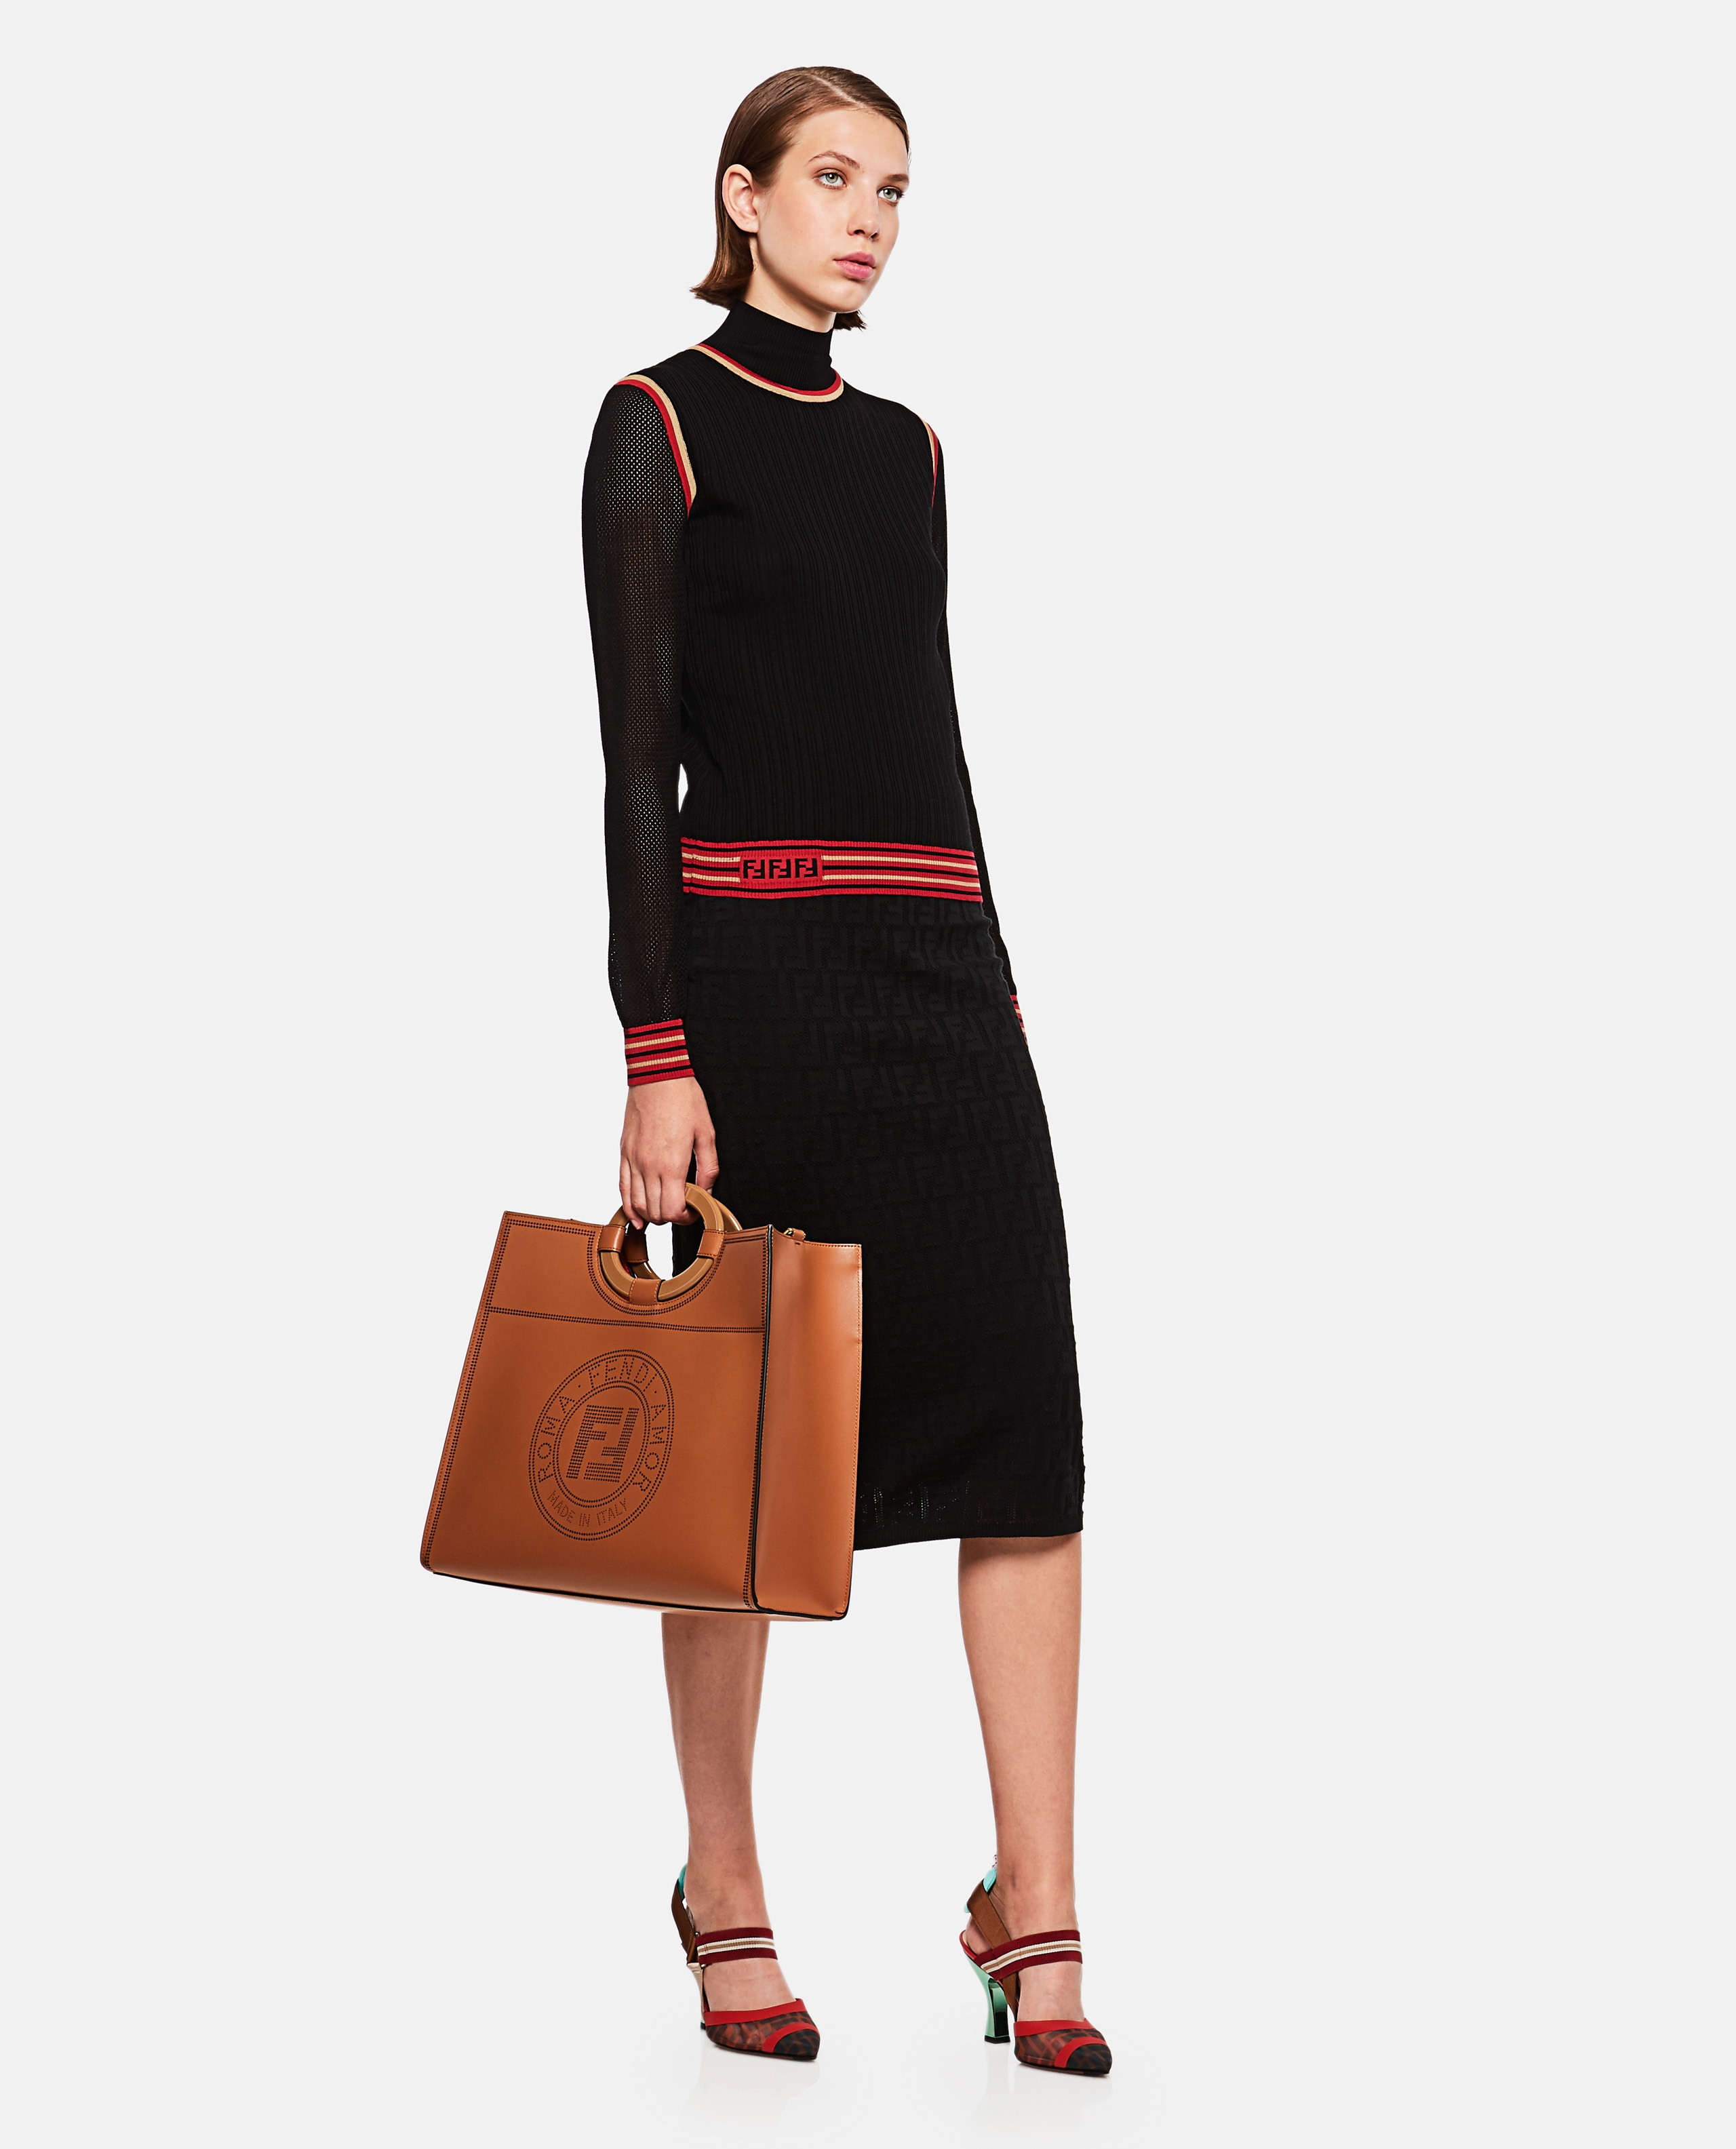 Knitted Skirt With Ff Motif Women Fendi 000190250028262 4